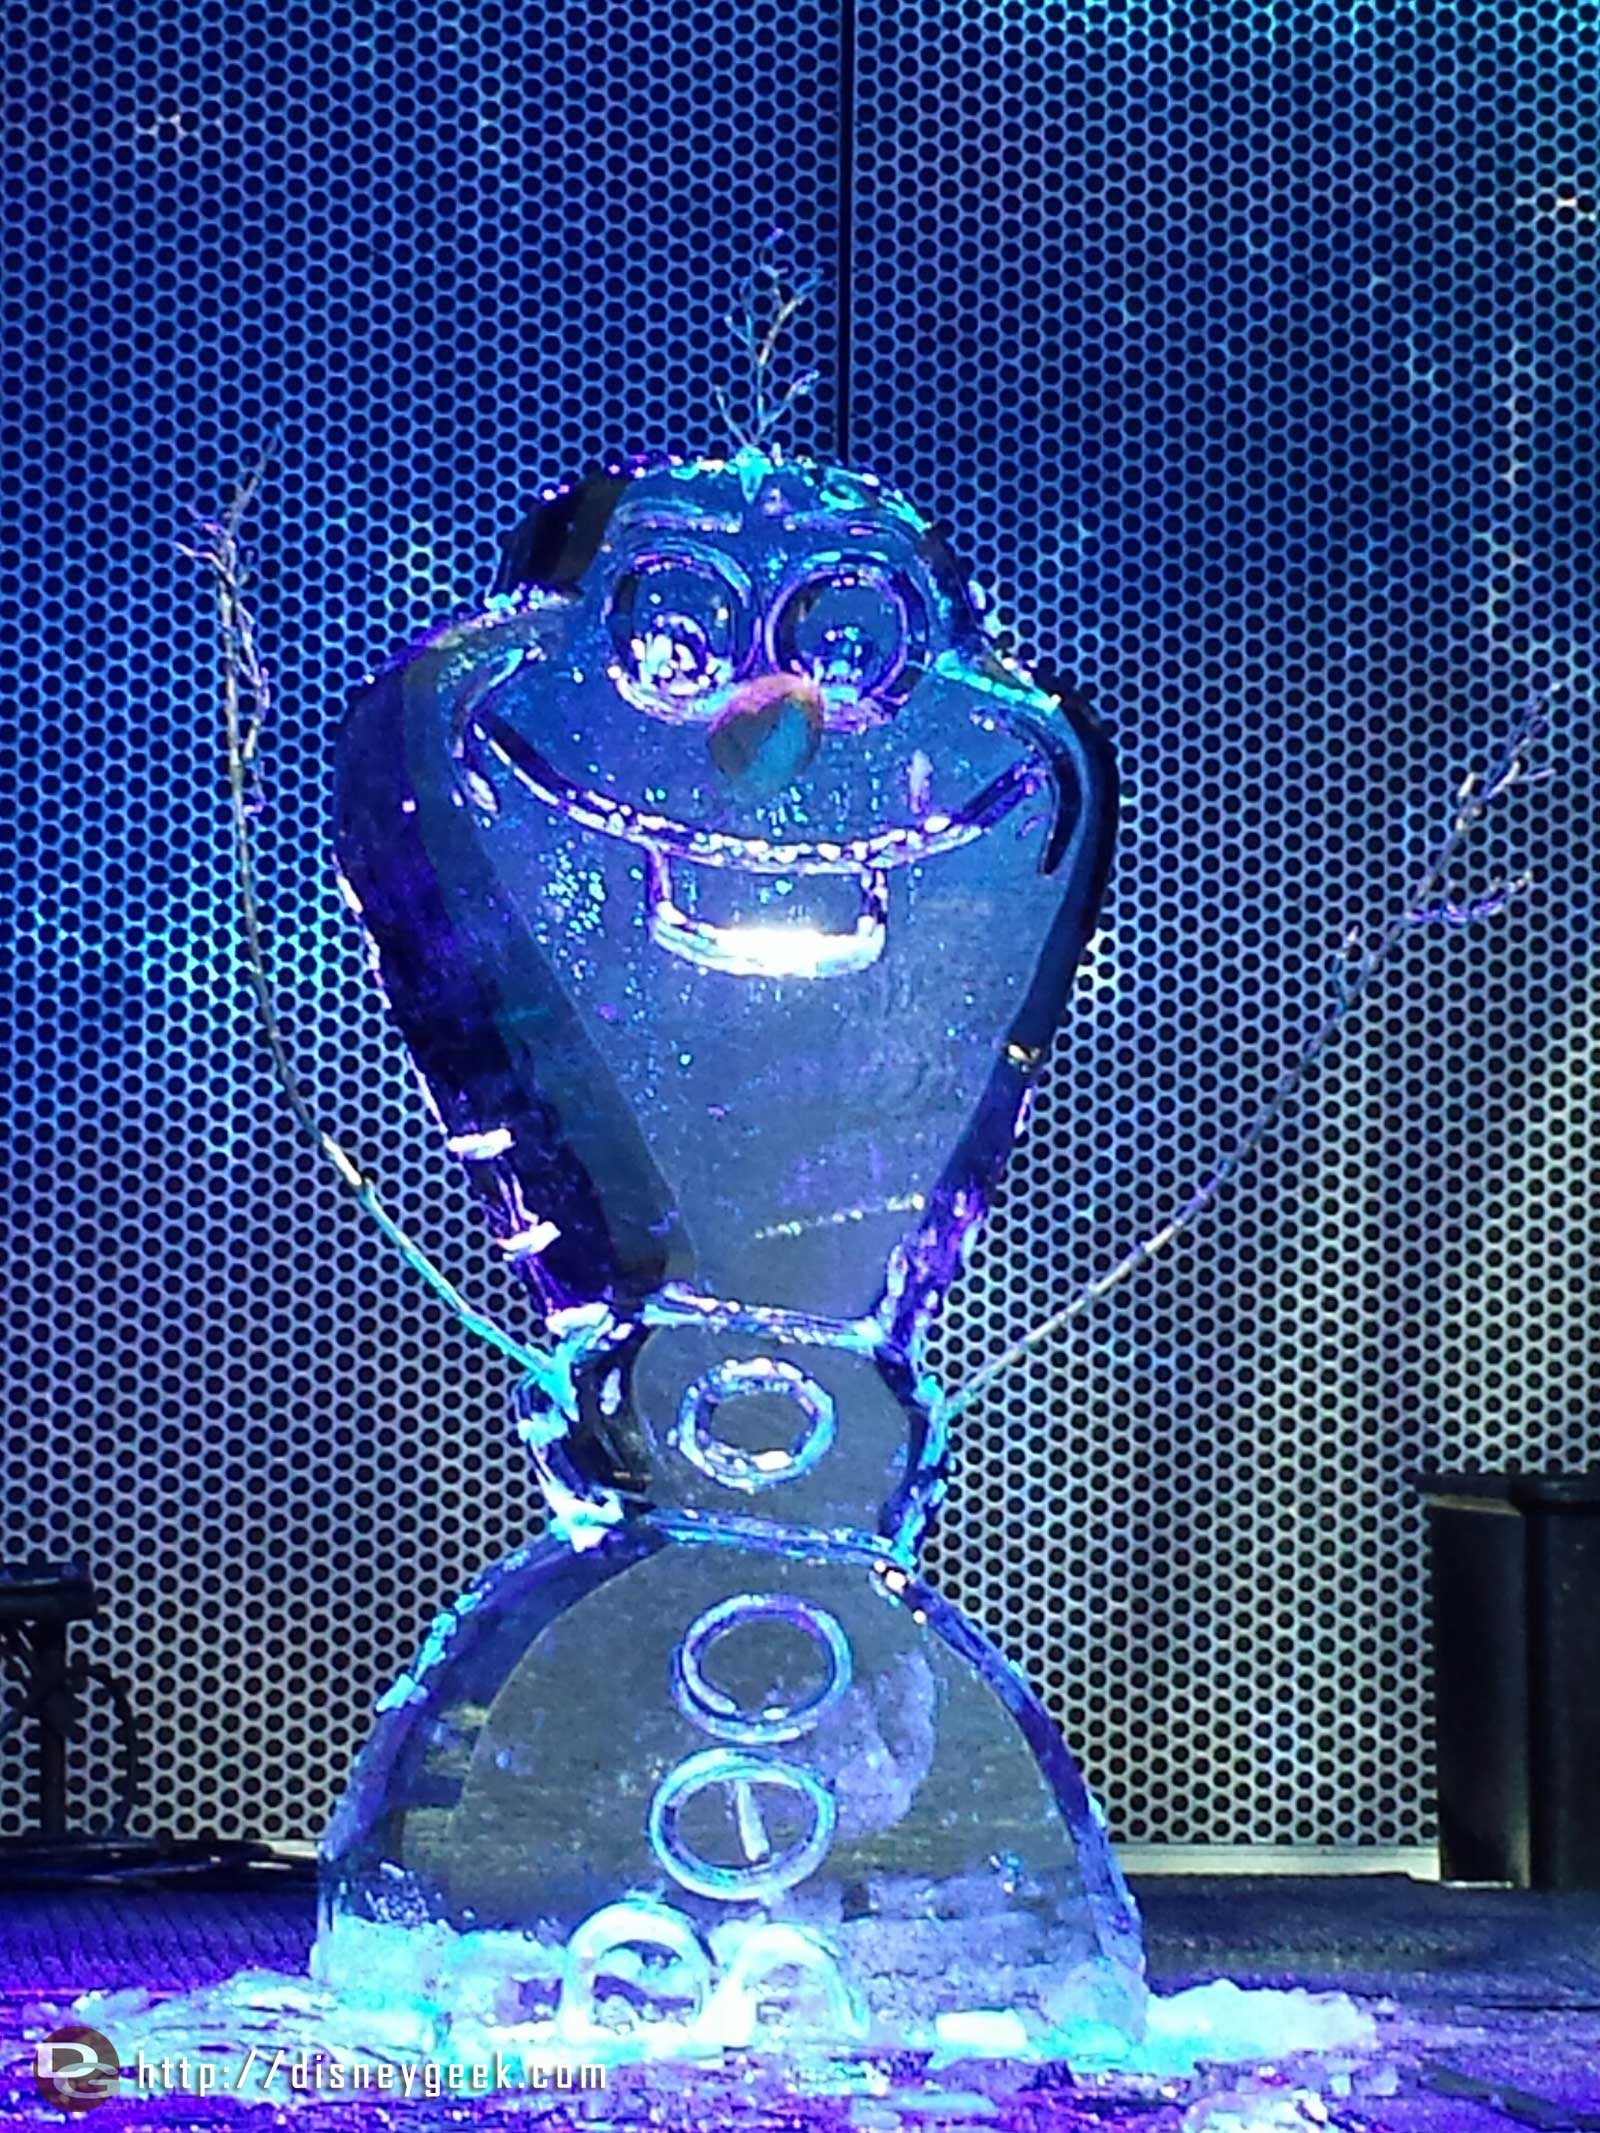 Olaf ice carving at #FreezeTheNight #FrozenFun